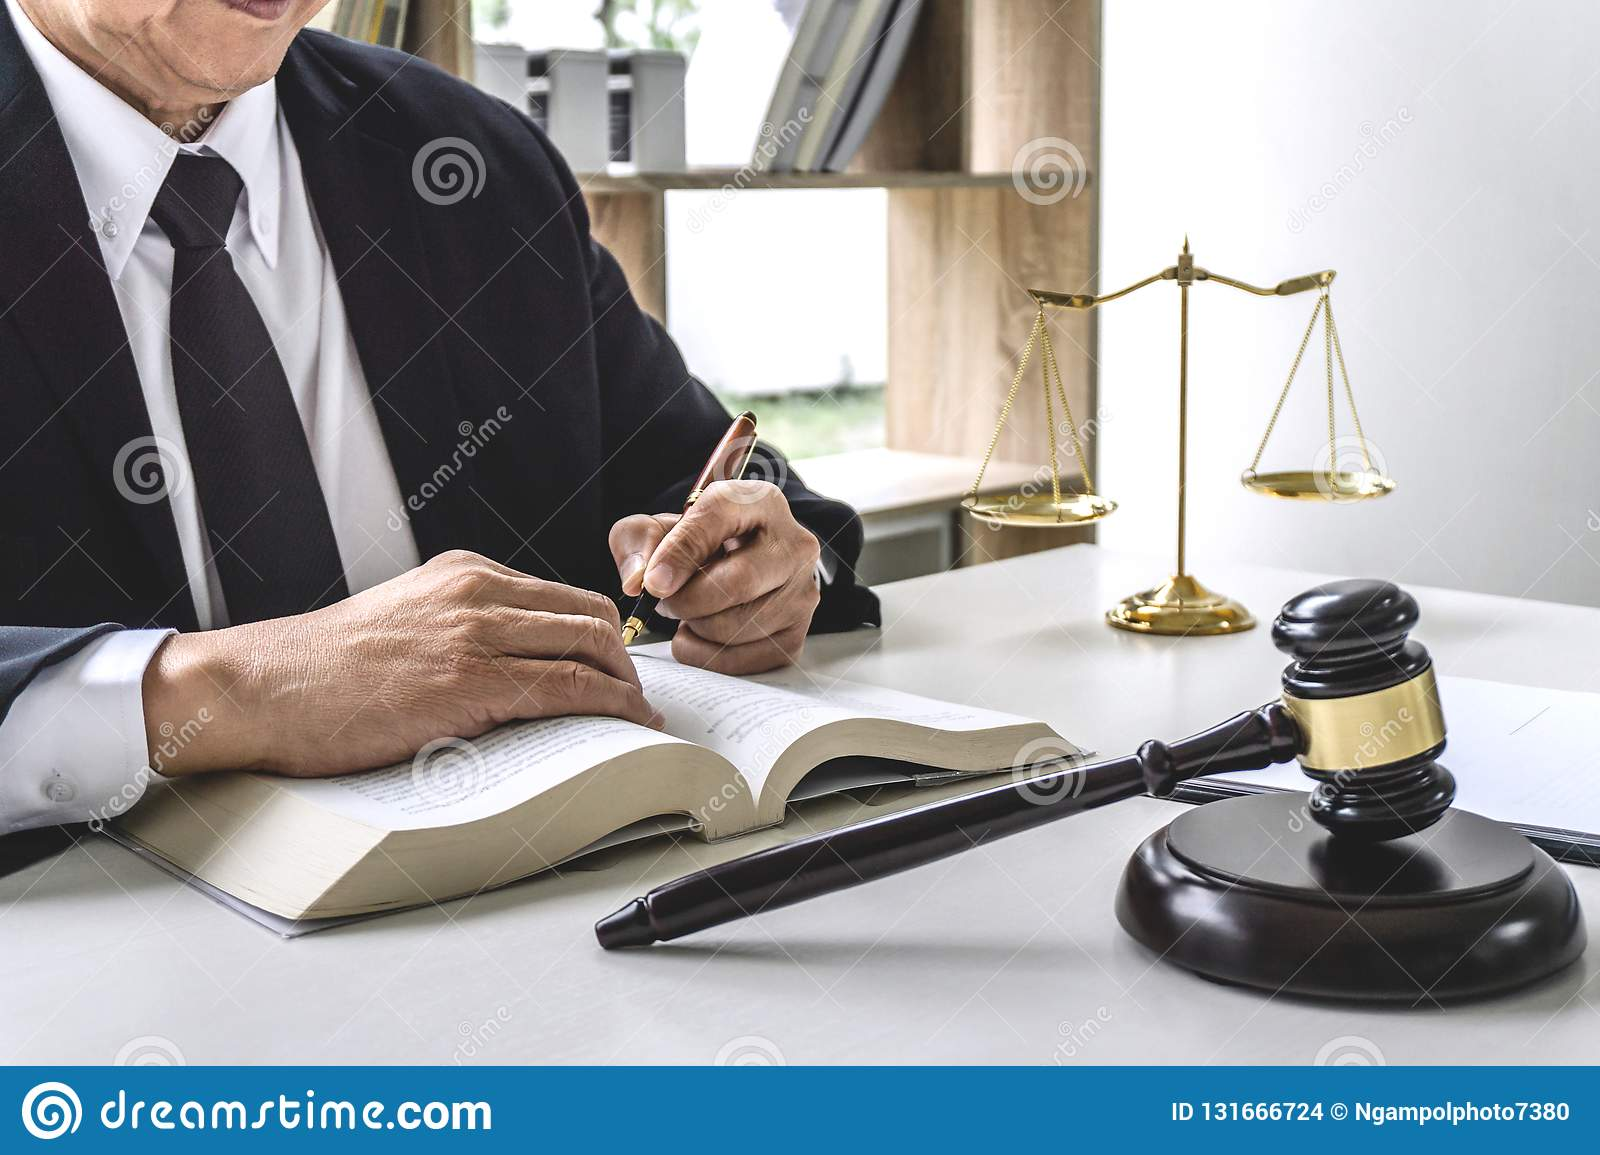 Law, Lawyer Attorney And Justice Concept, Male Lawyer Or Notary Working On  A Documents And Report Of The Important Case In The Stock Photo - Image of  barrister, counselor: 131666724